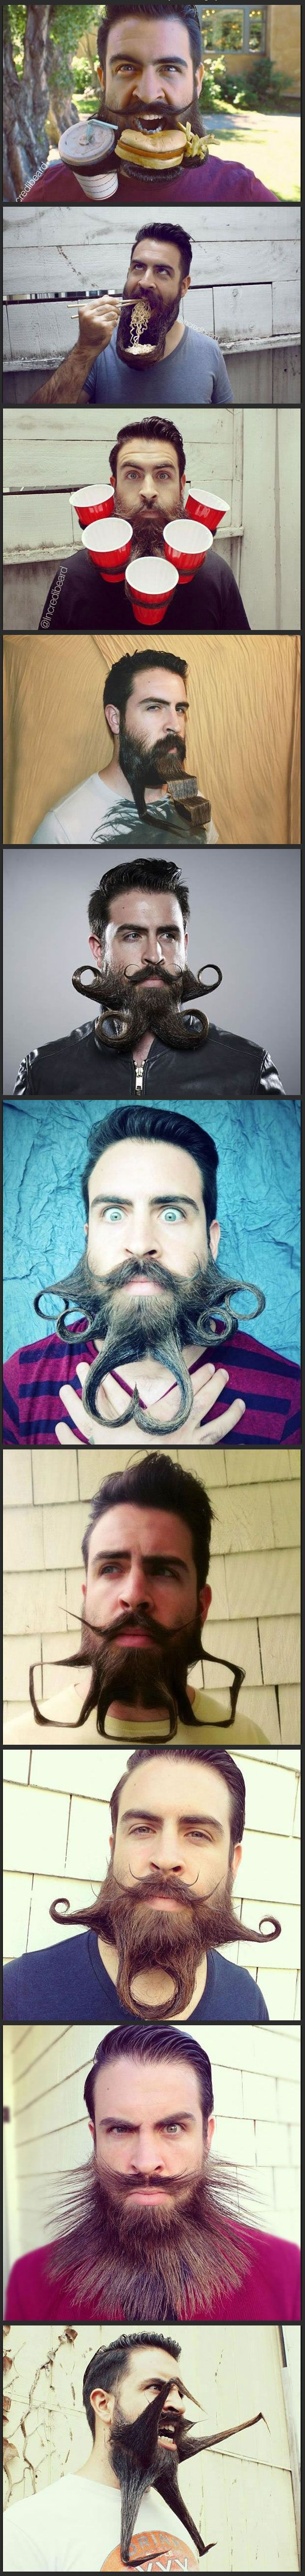 In honor of no shave November, crazy beard guy!